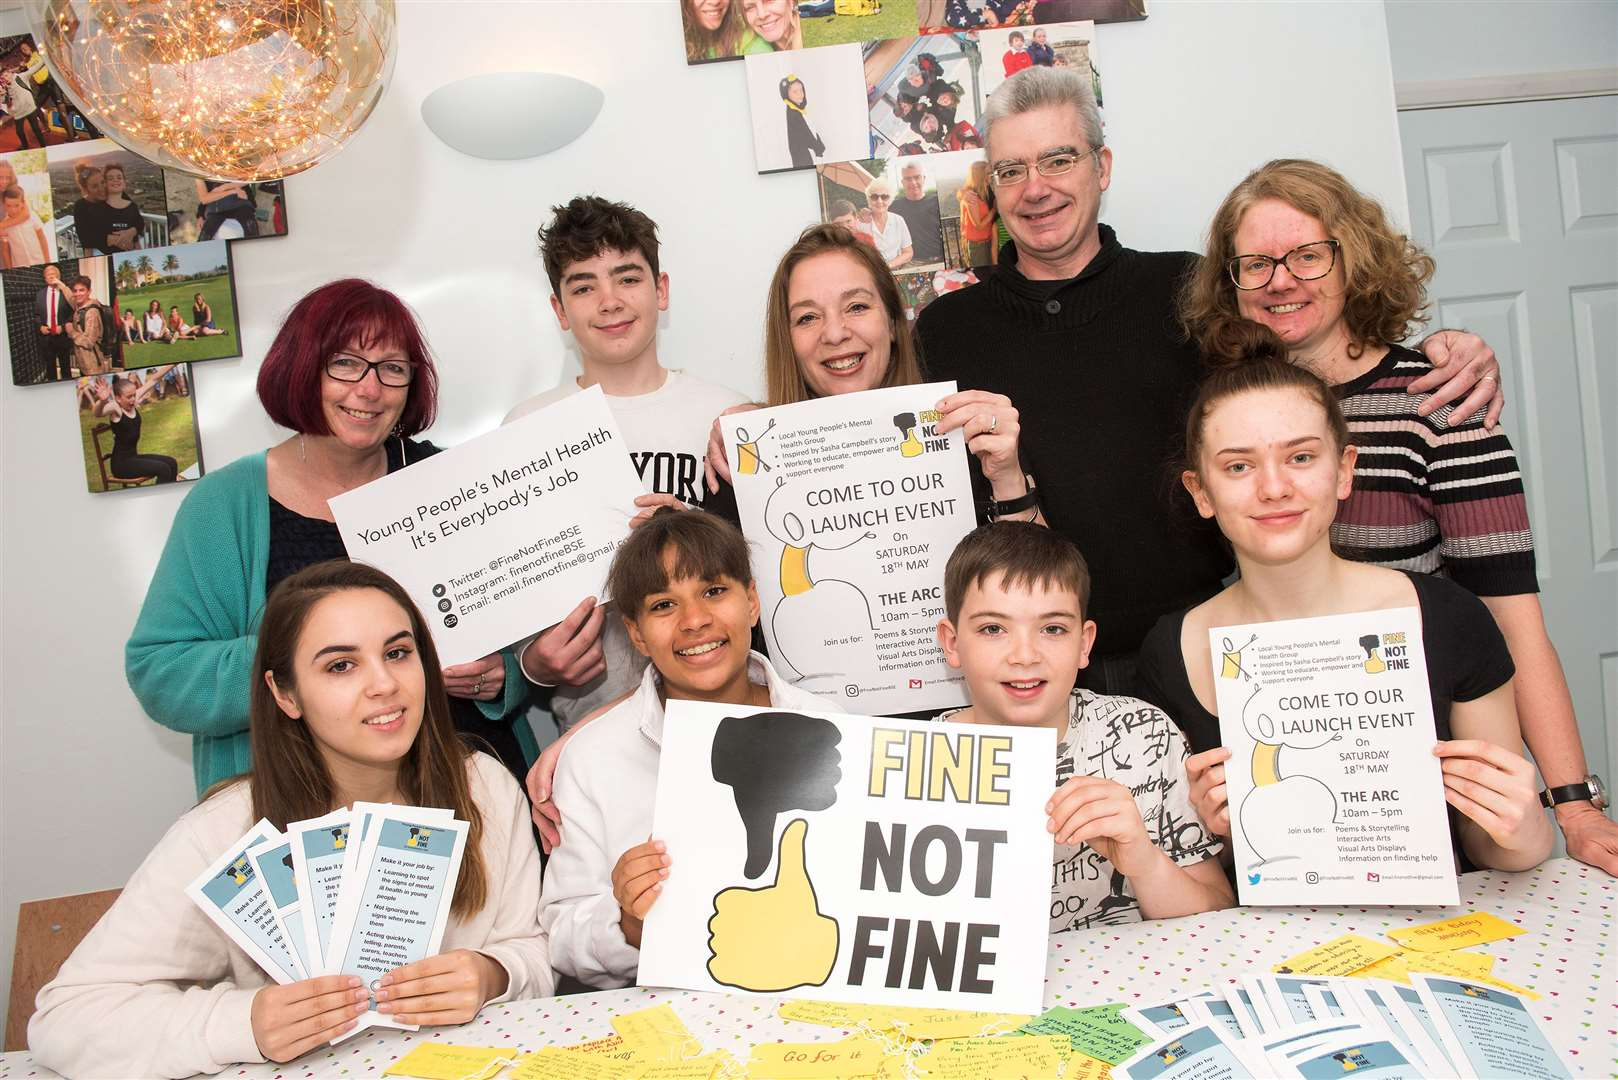 Di Kennedy, Sasha's brother Isaac, mum Jordanna, dad Donald, Liz Cooke, Eva Allan, Jess Gottgens, brother Hamish and Millie Cooke Wharton prepare for the Fine Not Fine campaign. Picture by Mark Westley.